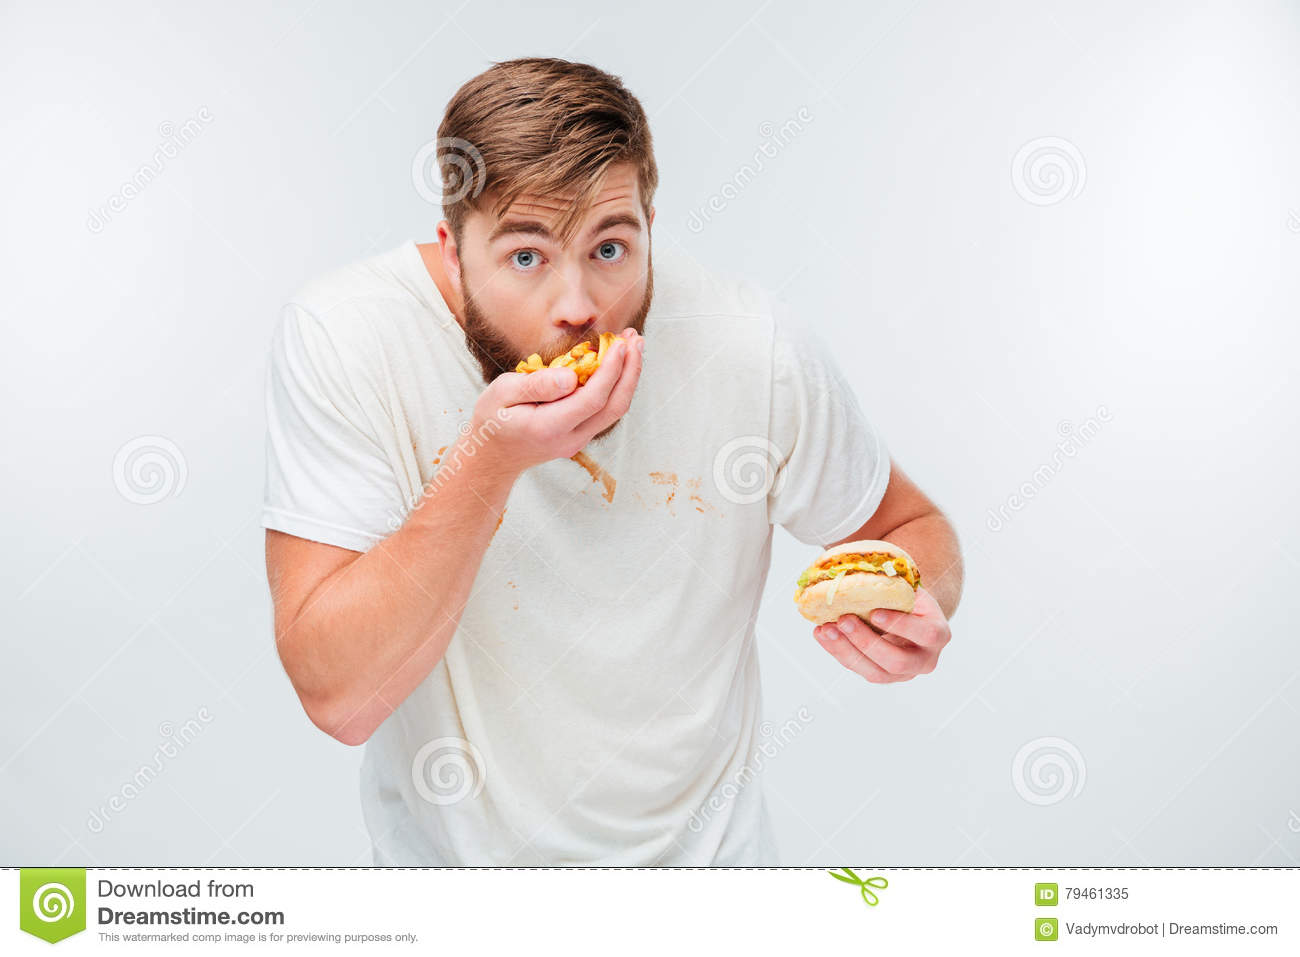 Funny hungry bearded man eating junk food